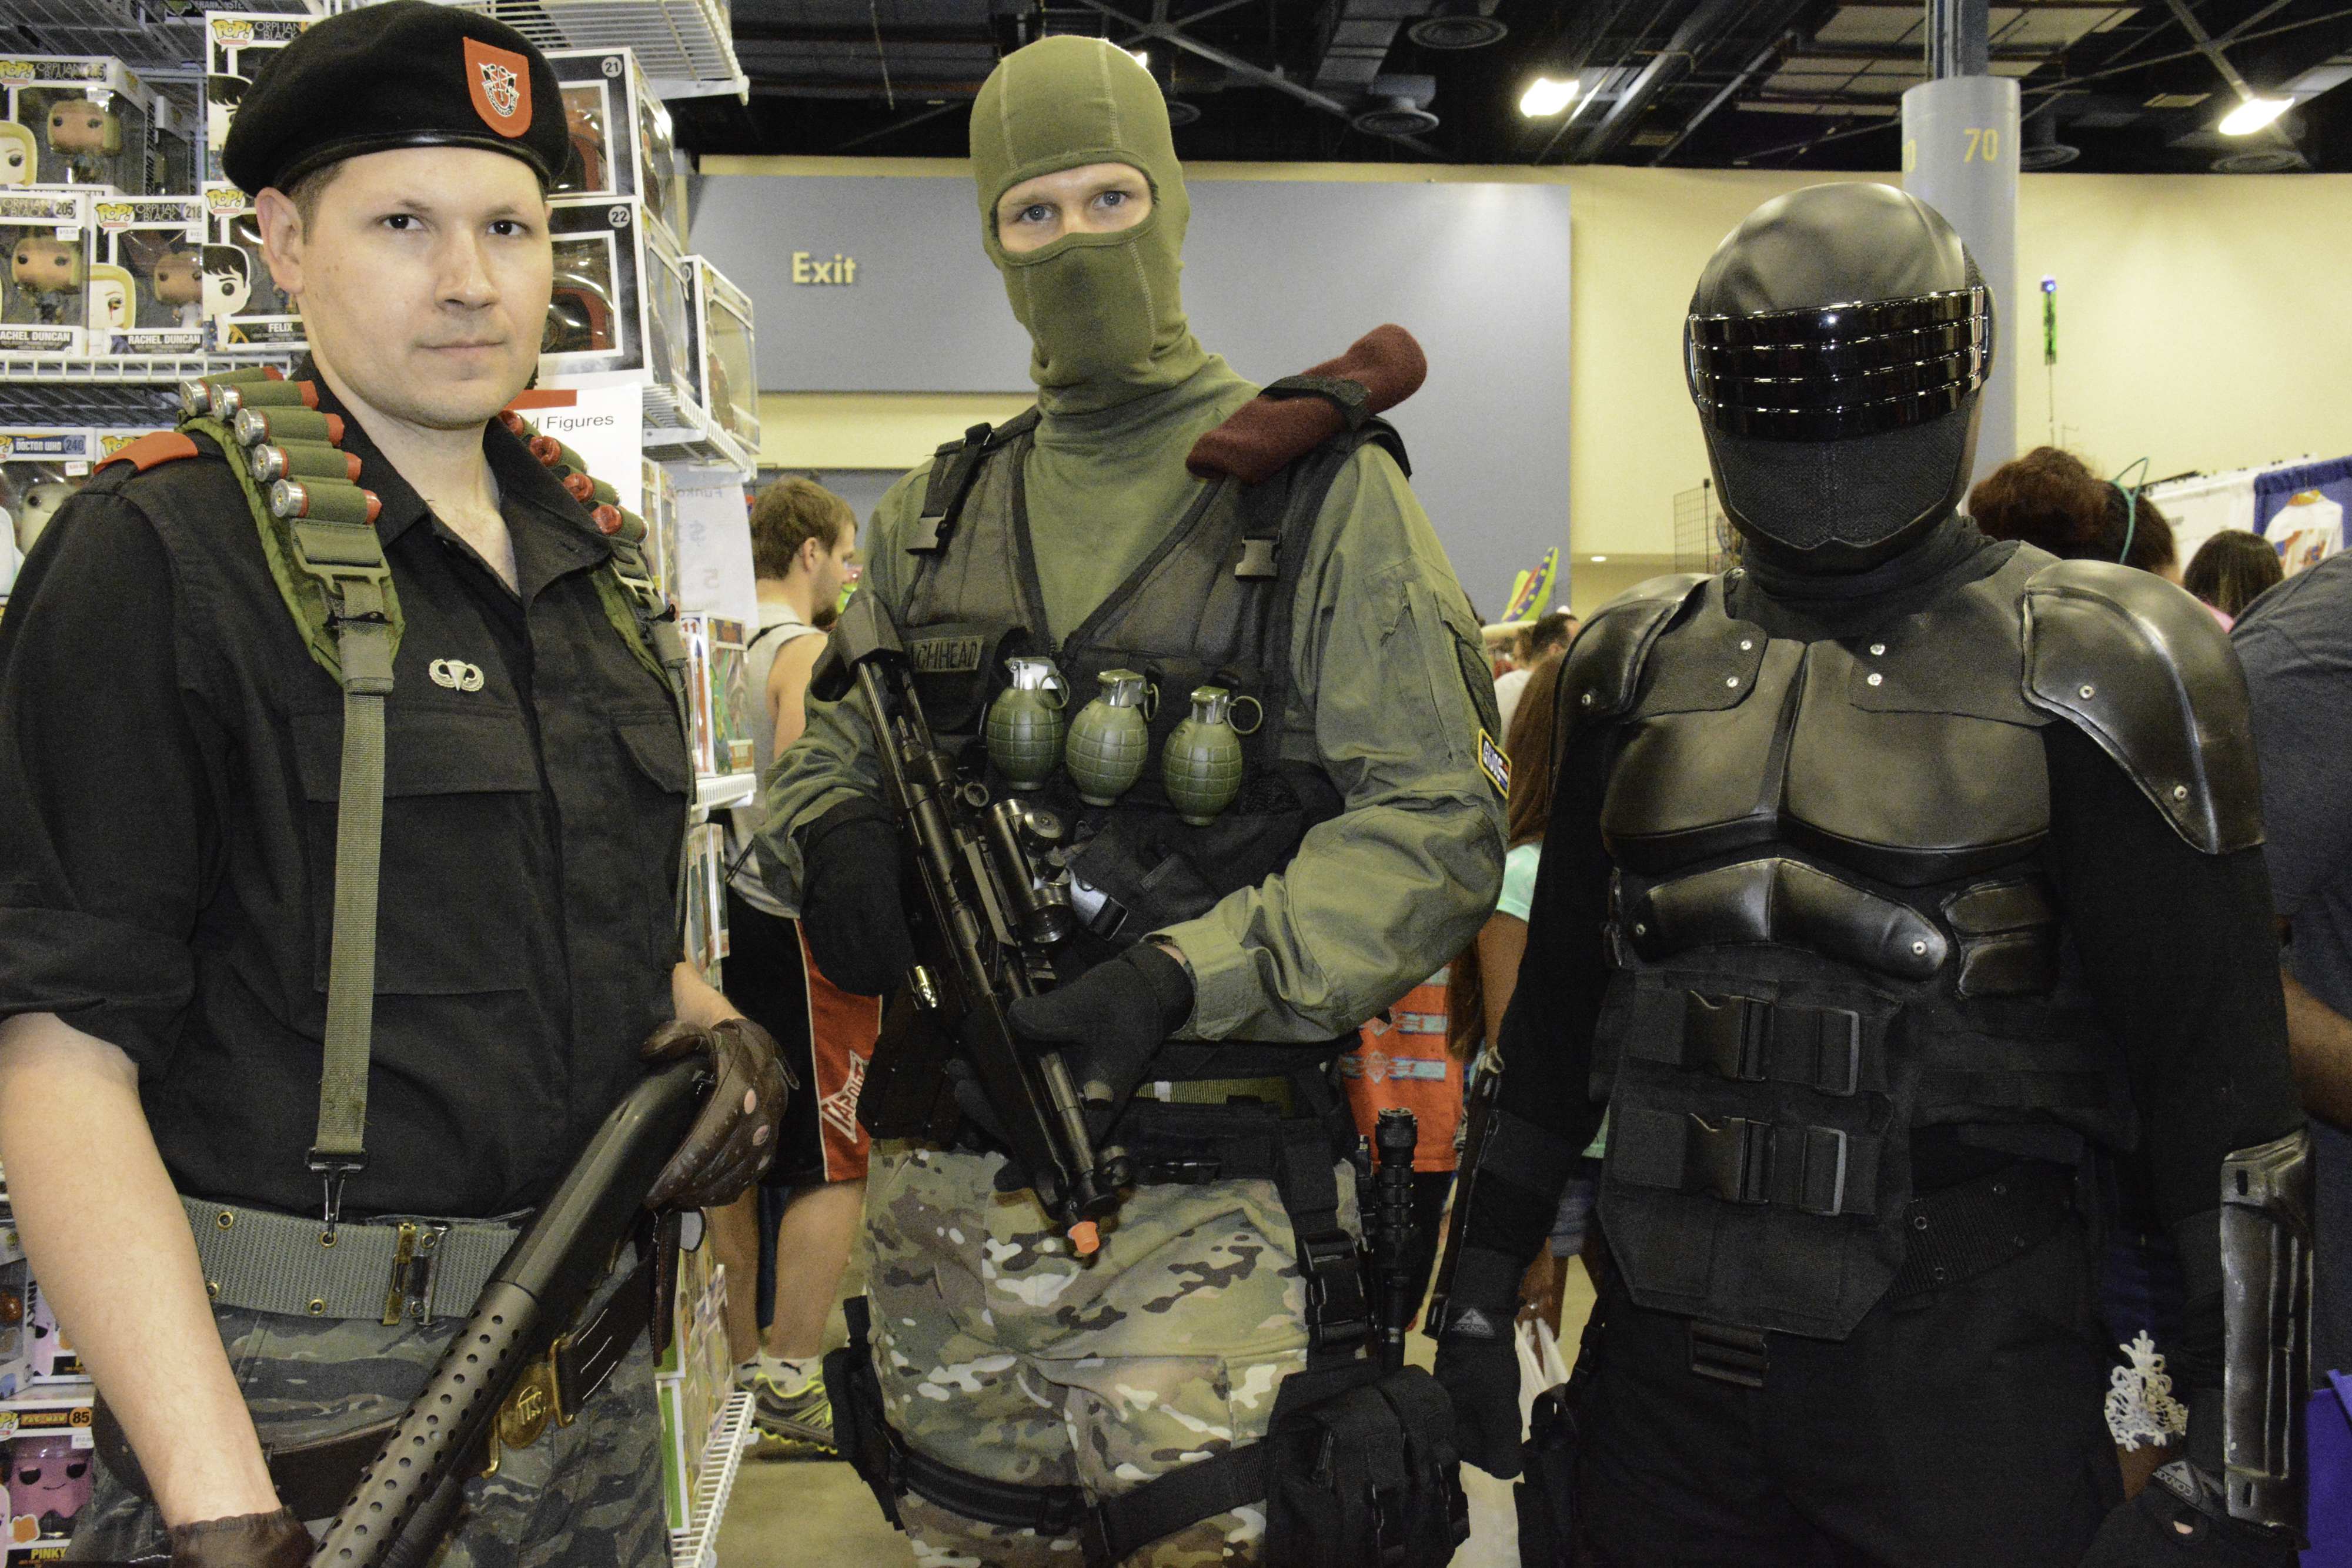 Cosplayers dressed as characters from G.I. Joe.